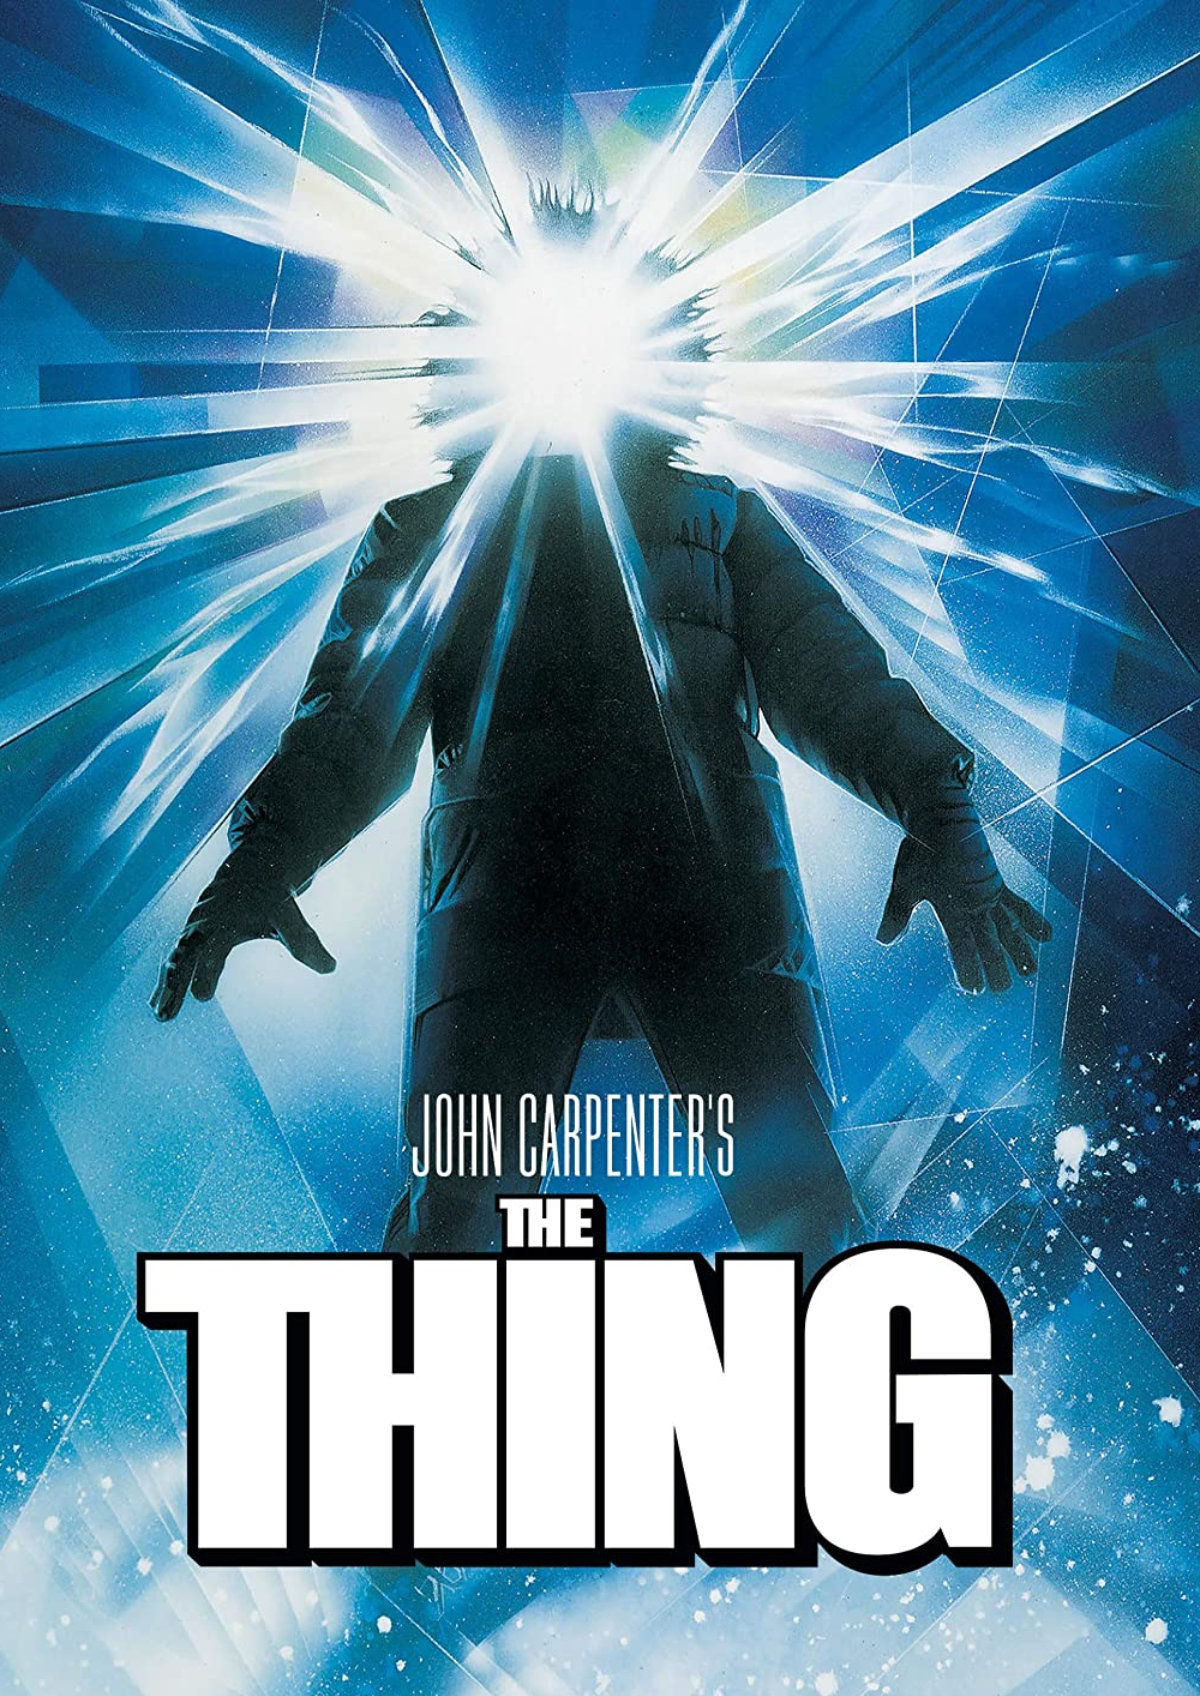 'The Thing' movie poster